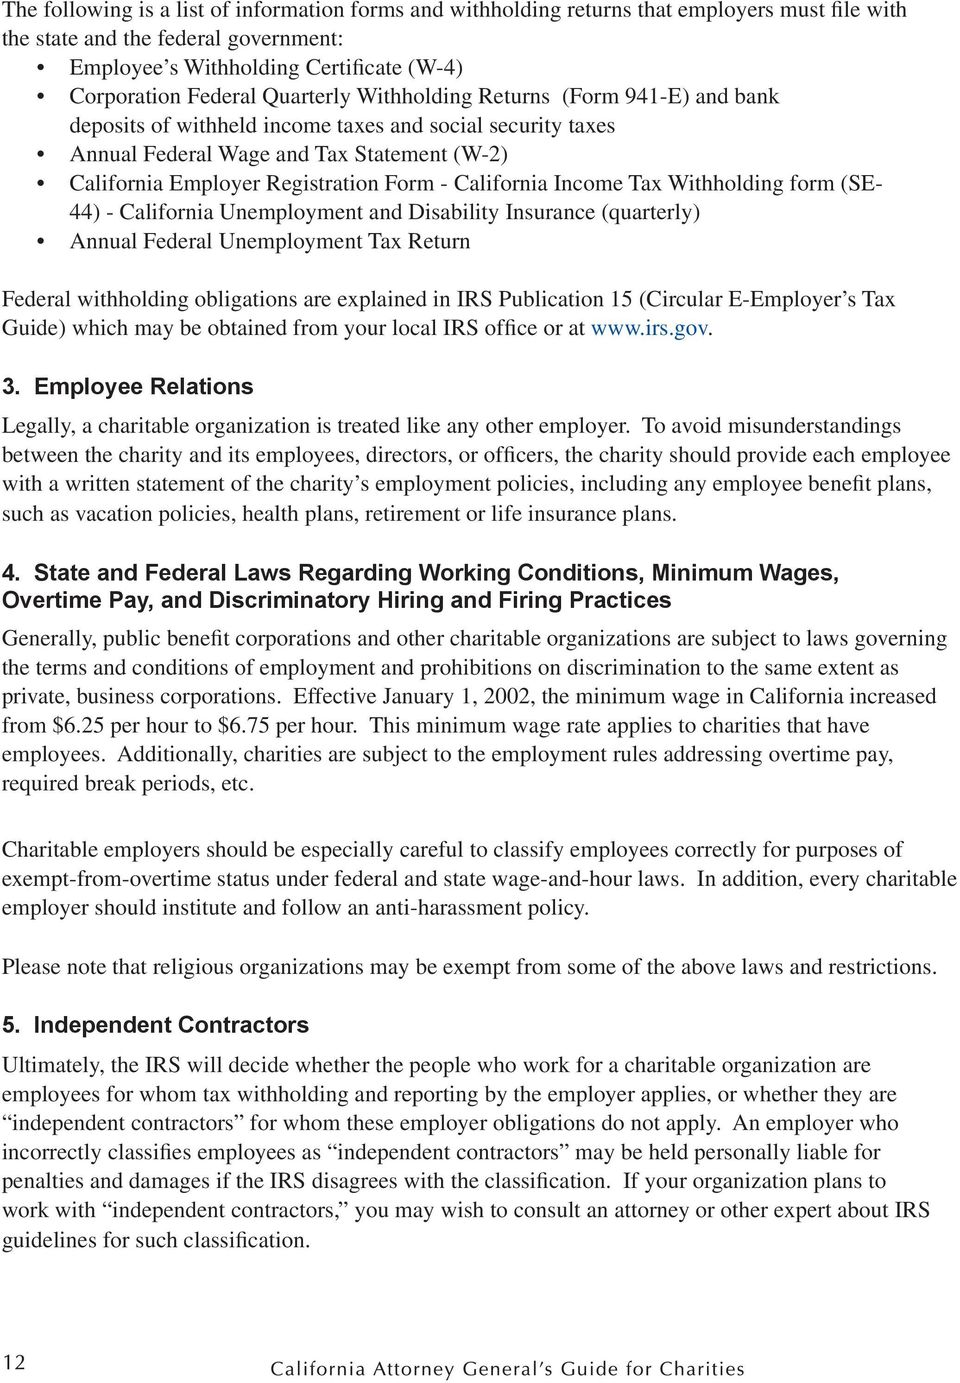 California Income Tax Withholding form (SE- 44) - California Unemployment and Disability Insurance (quarterly) Annual Federal Unemployment Tax Return Federal withholding obligations are explained in